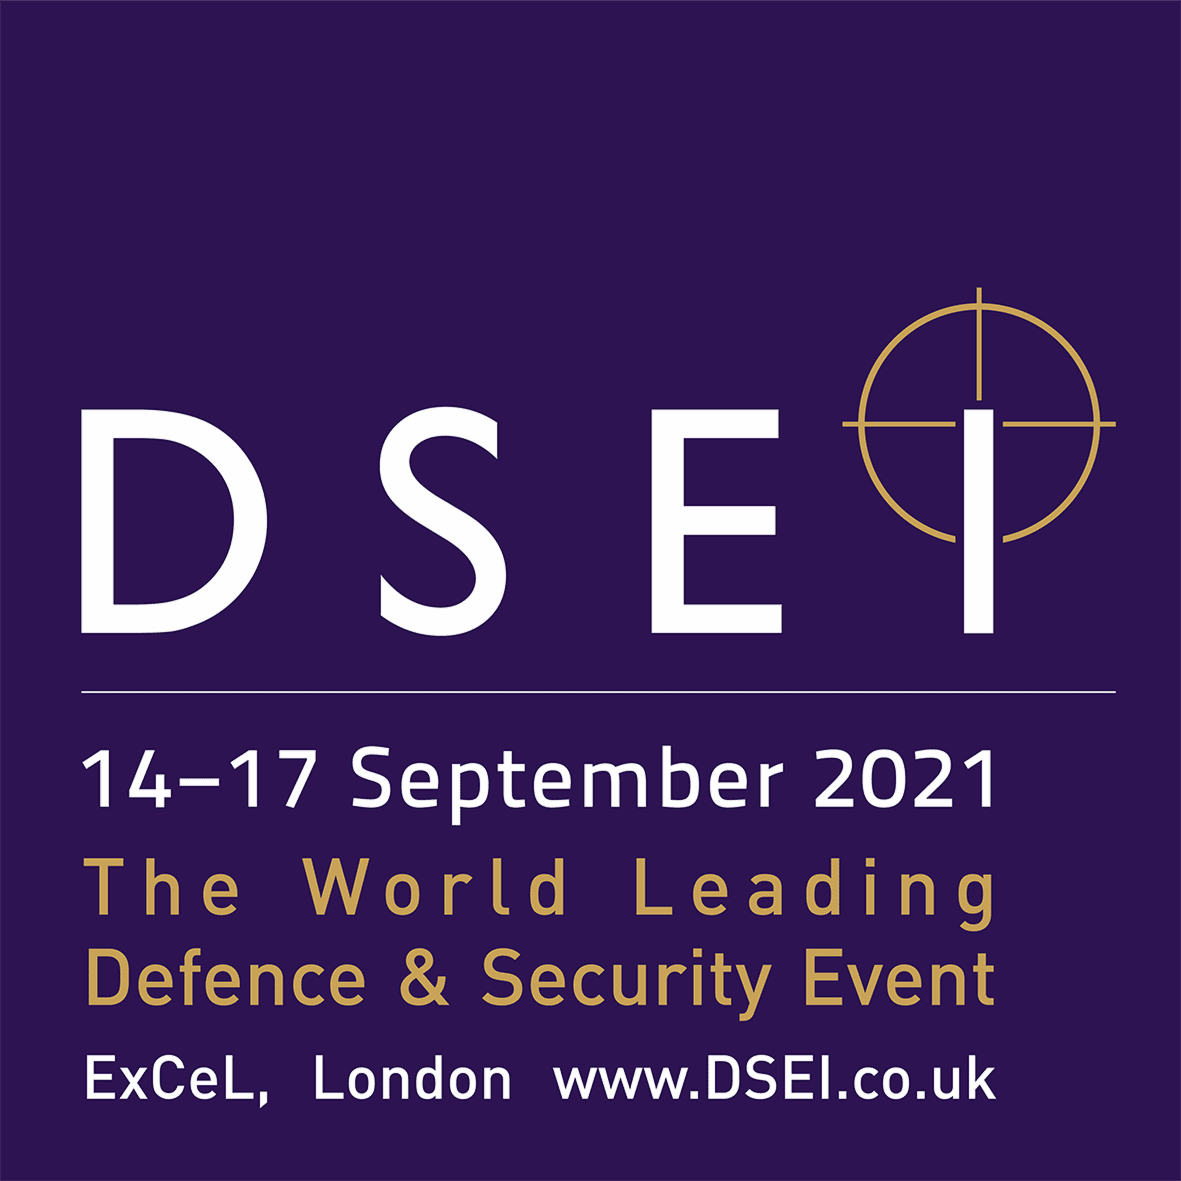 Dsei 2021 London Dsei Defence Exhibition And Conference 2021